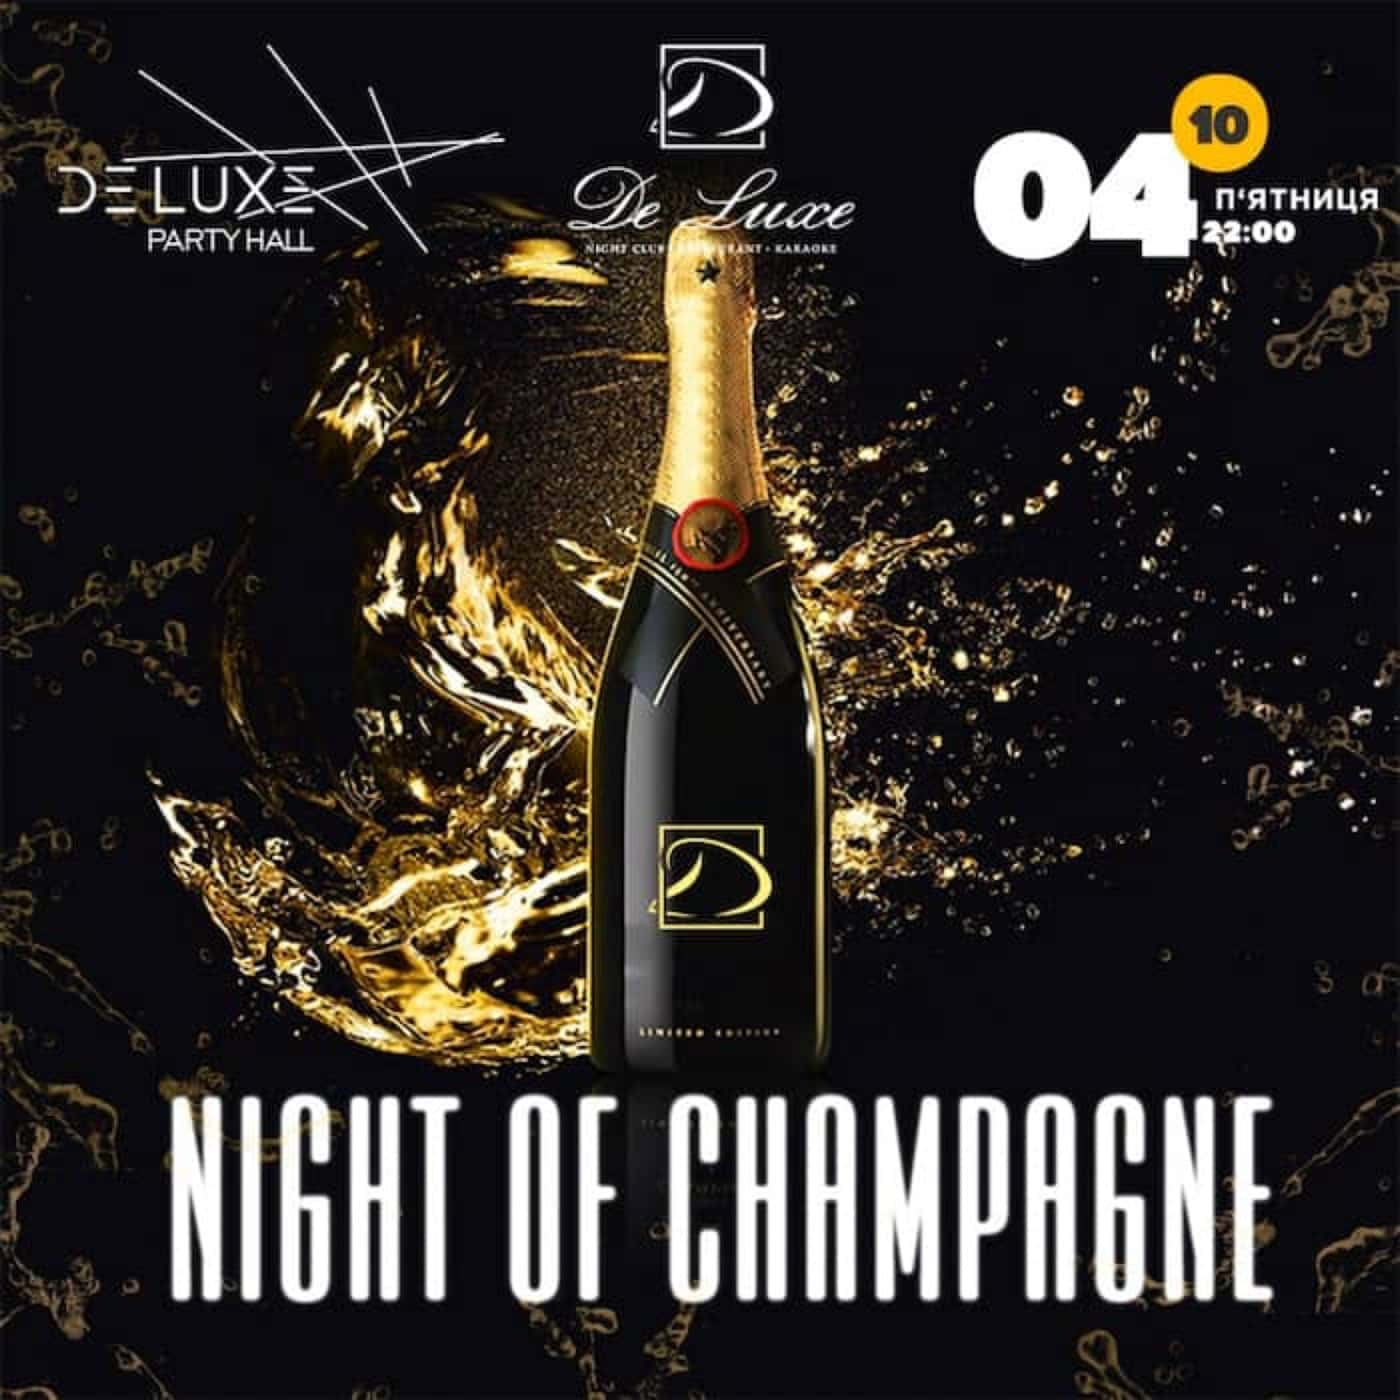 Night of champagne